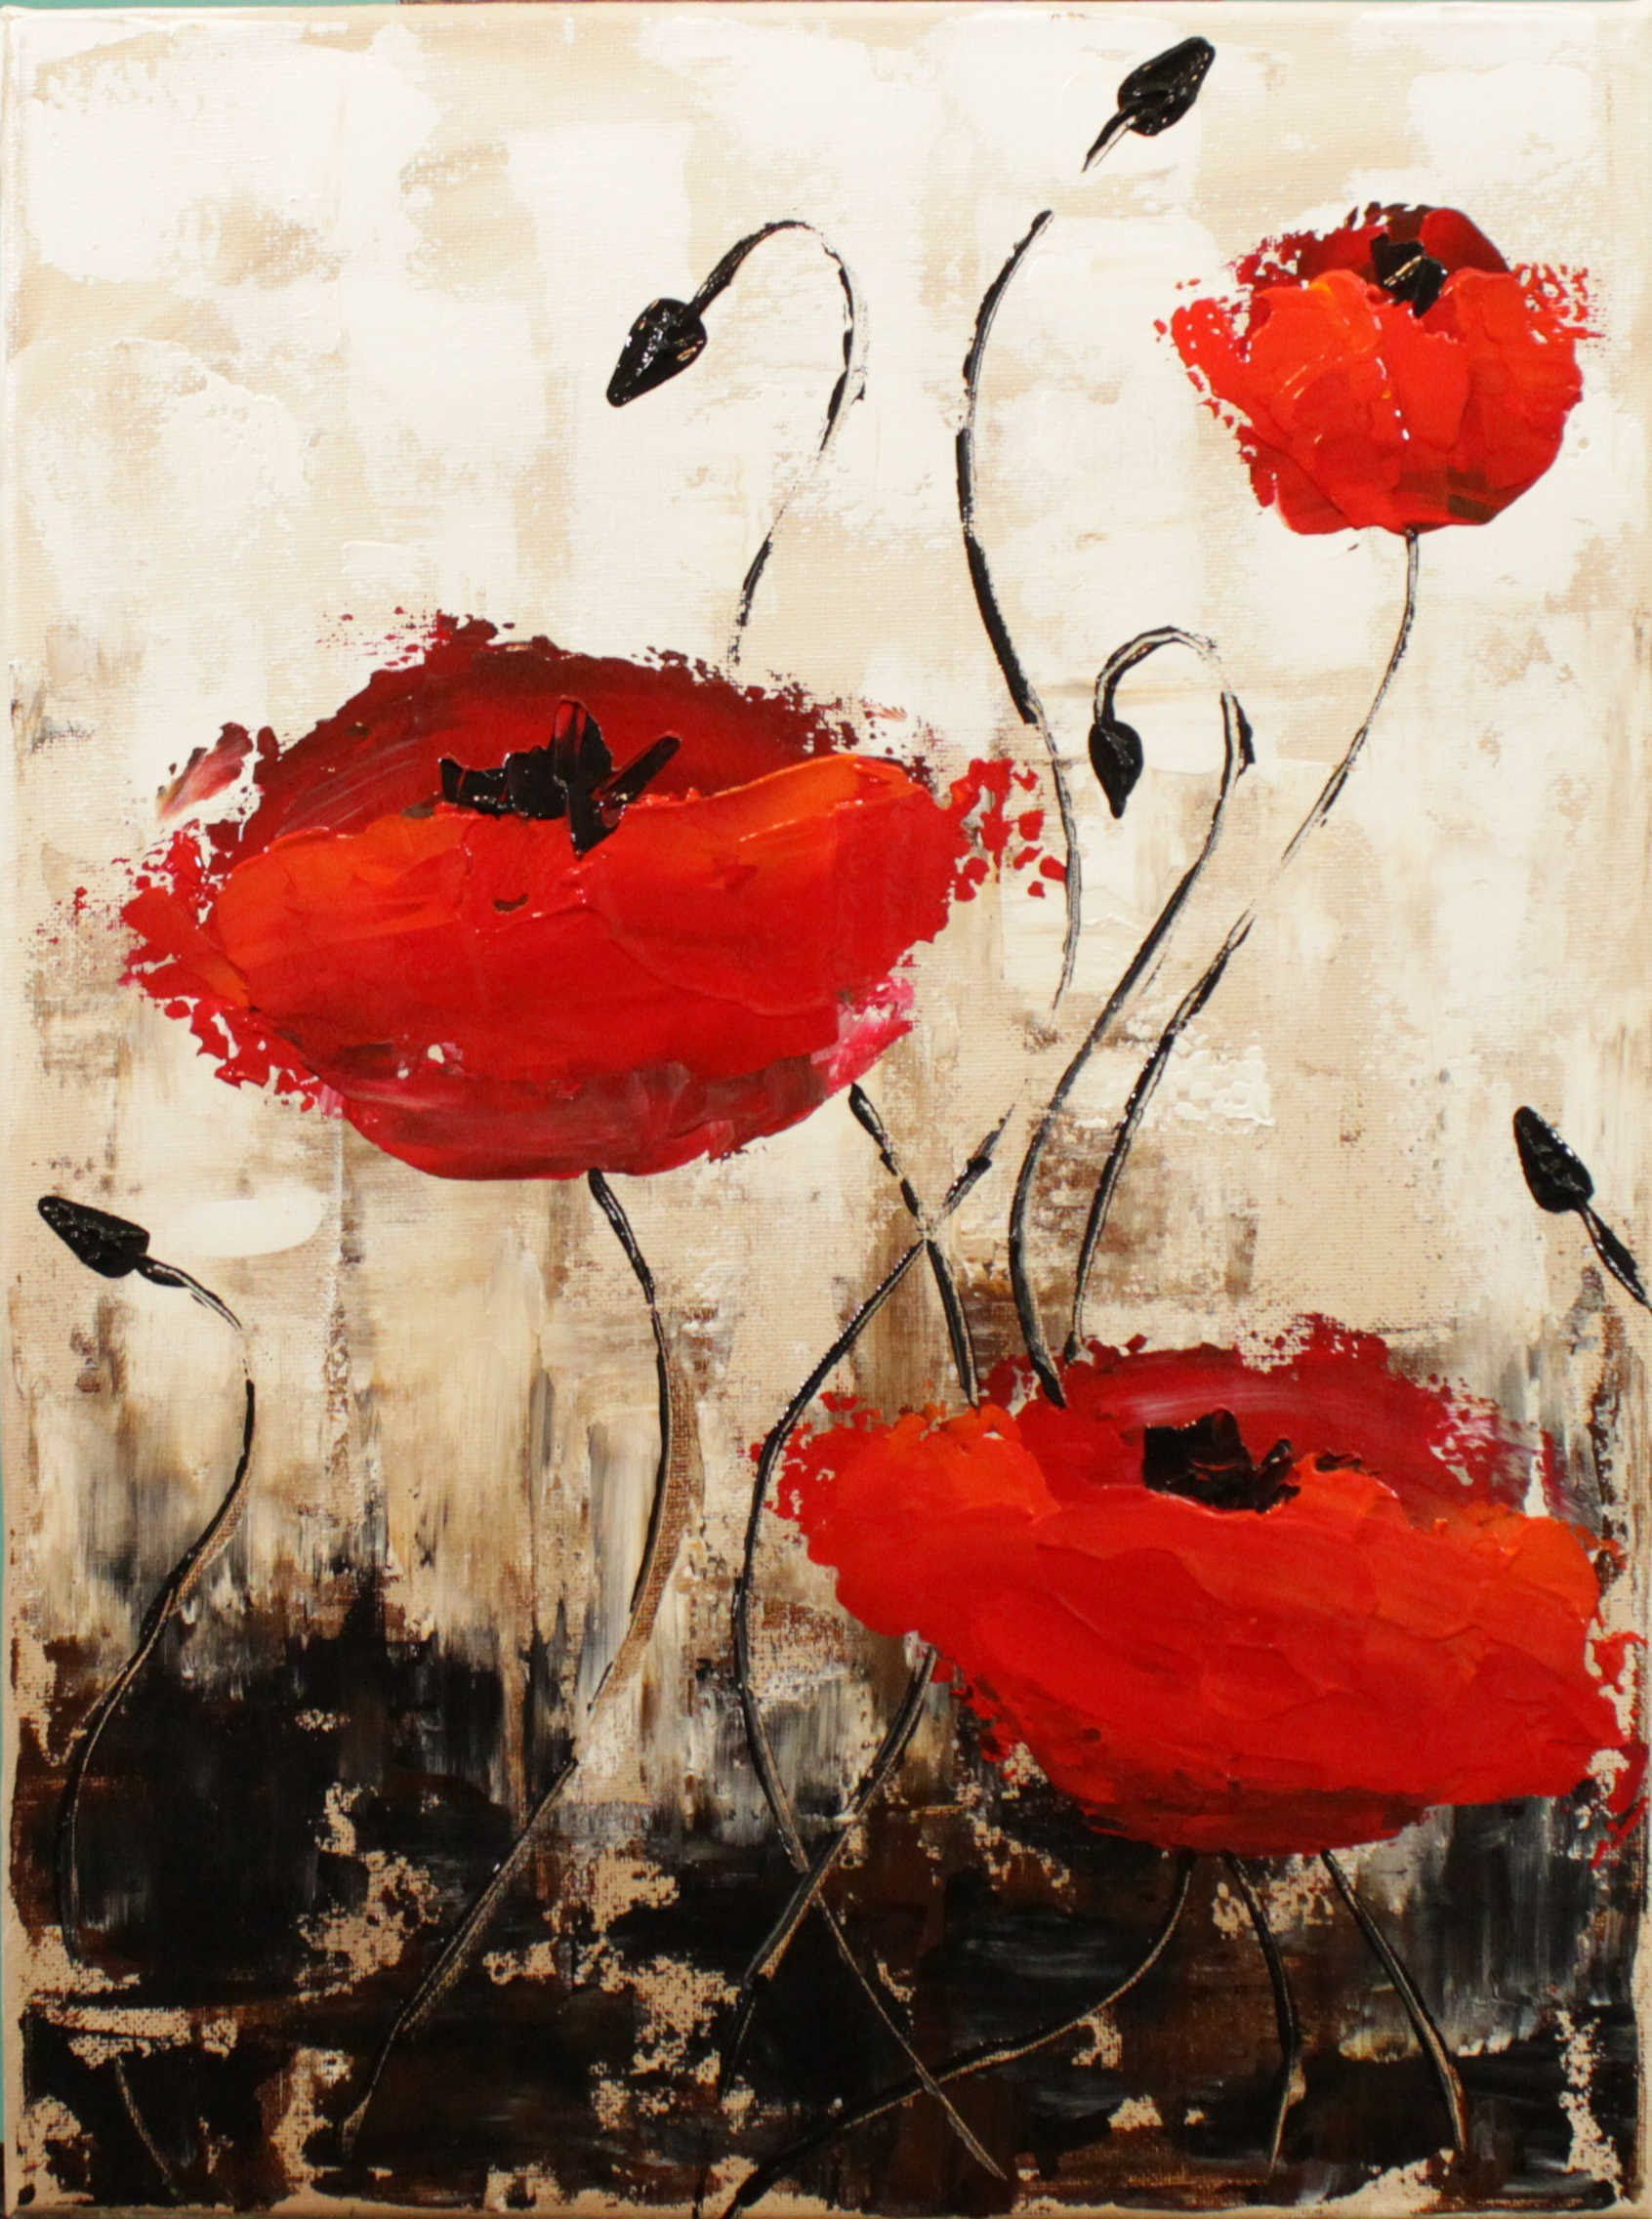 Impressionist Poppies Step By Step Acrylic Painting On Canvas For Beginners Lovesummerart Youtube Abstrakte Malerei Malerei Abstraktes Gemalde